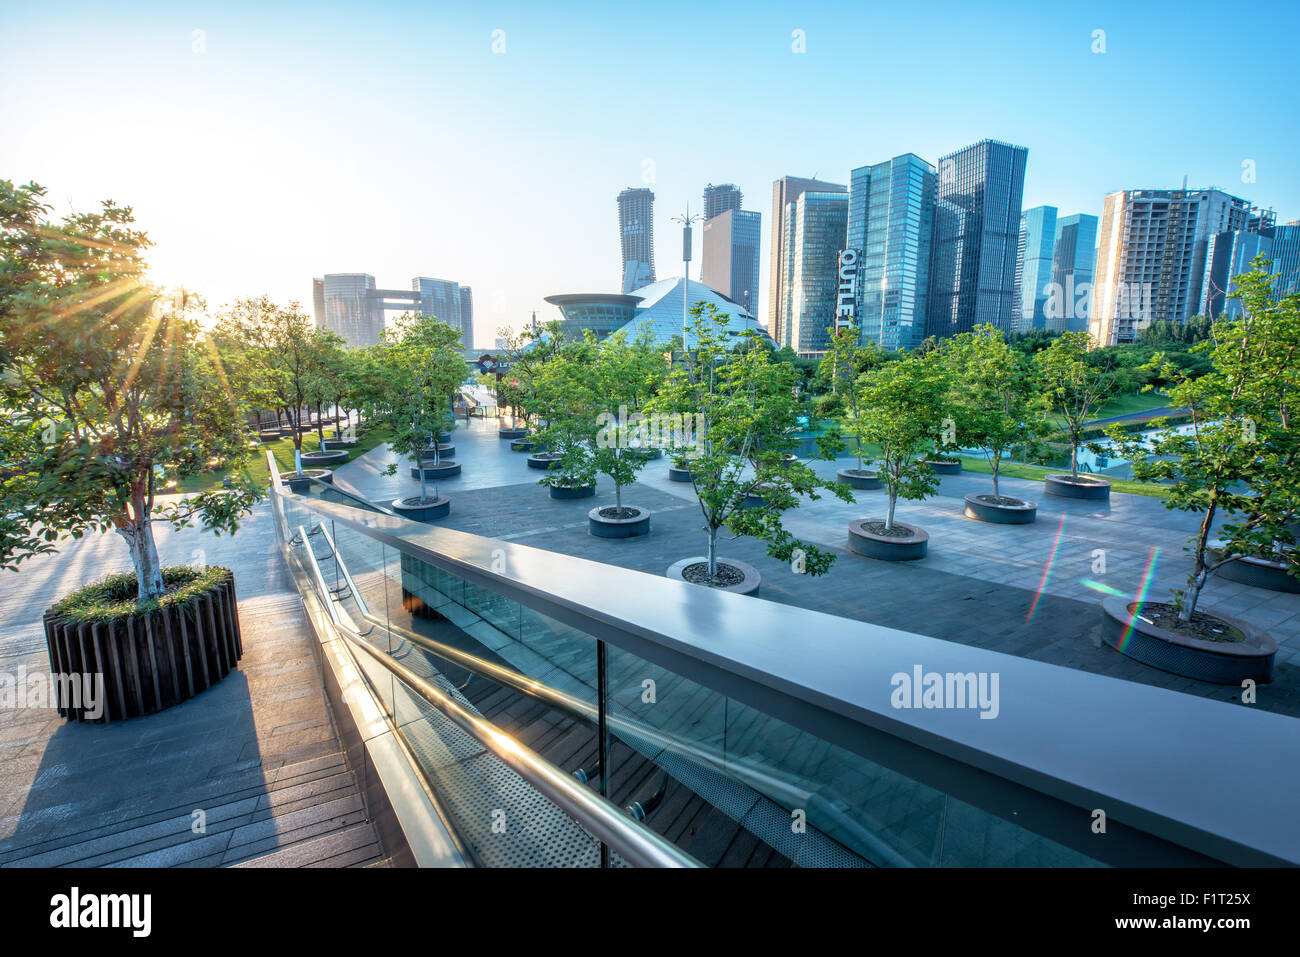 Urban jungle, modern Hangzhou Jianggan cityscape on a beautiful day, Hangzhou, Zhejiang, China, Asia - Stock Image